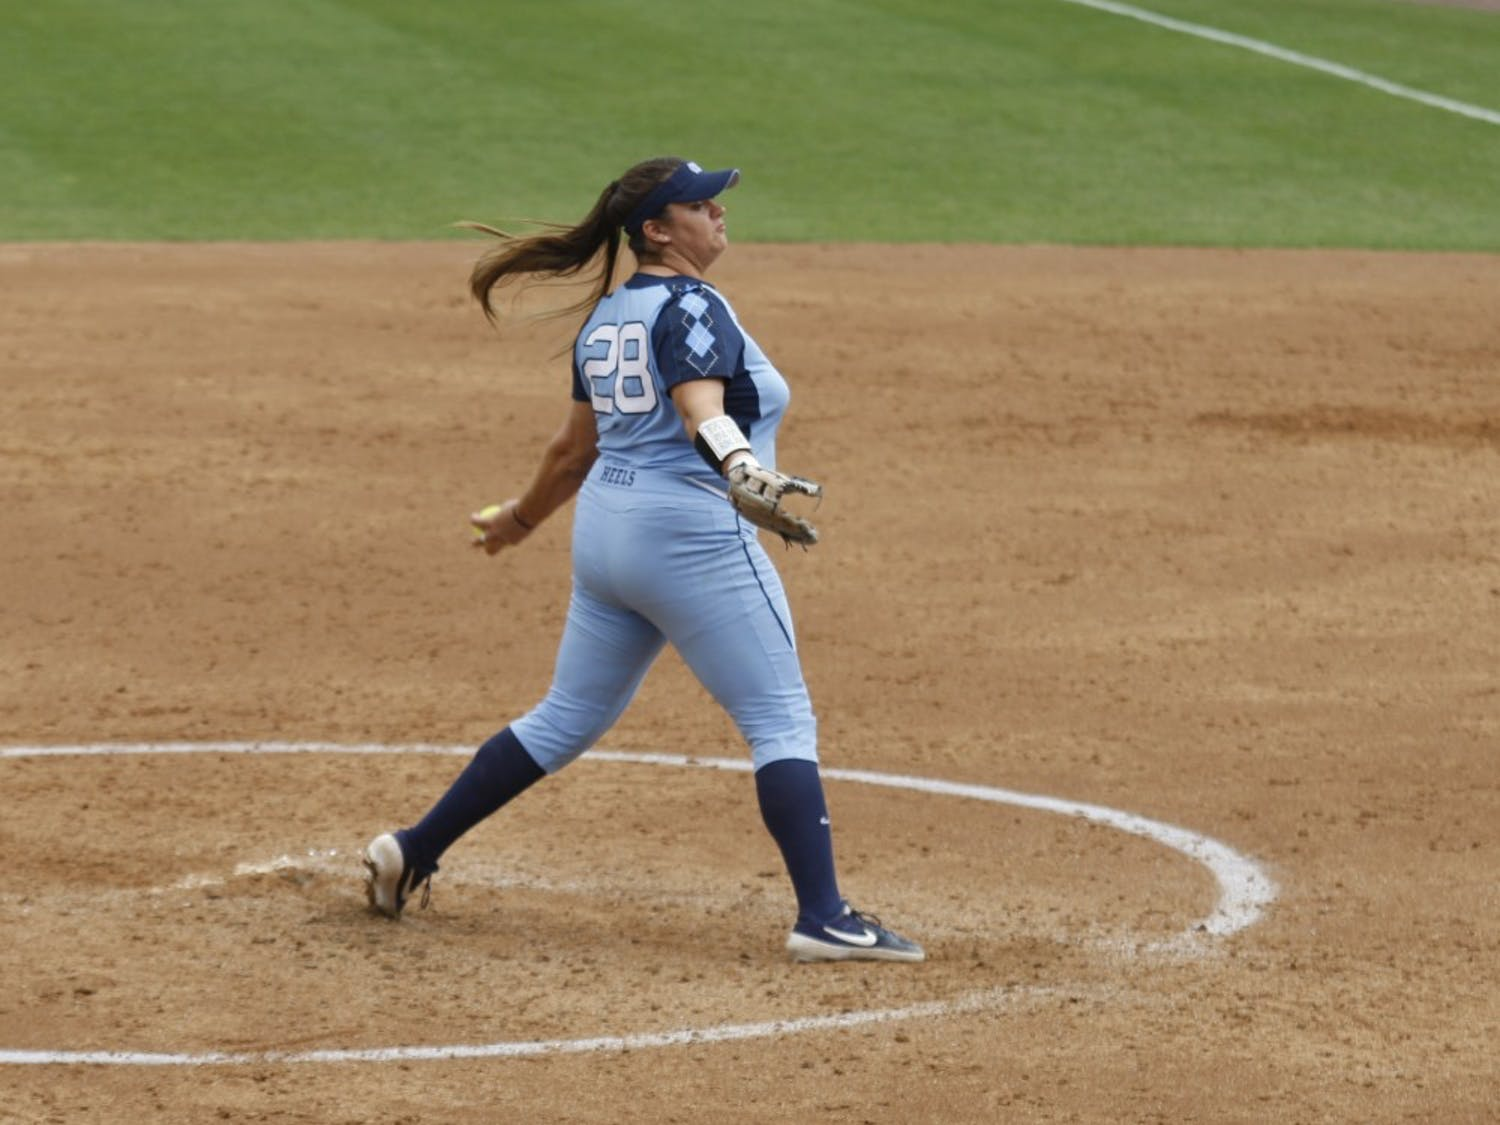 Junior pitcher and first baseman Brittany Pickett (28) pitches during UNC's double header against the University of Virginia. The Tar Heels won both games 8-0 at the G. Anderson Softball Stadium on Sunday, Apr. 7, 2019.